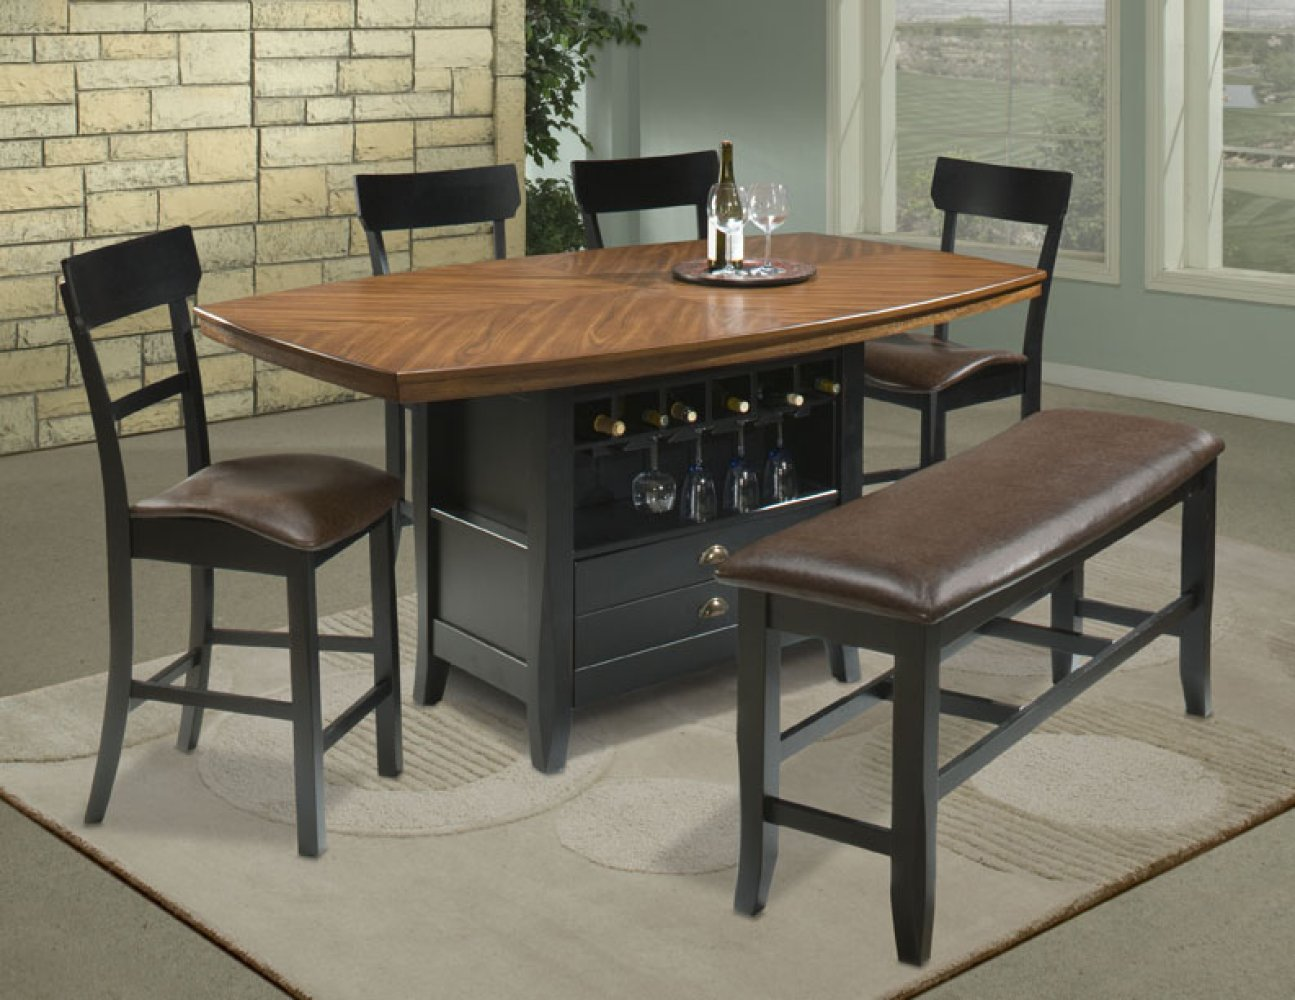 High Top Table Sets To Create An Entertaining Dining Space